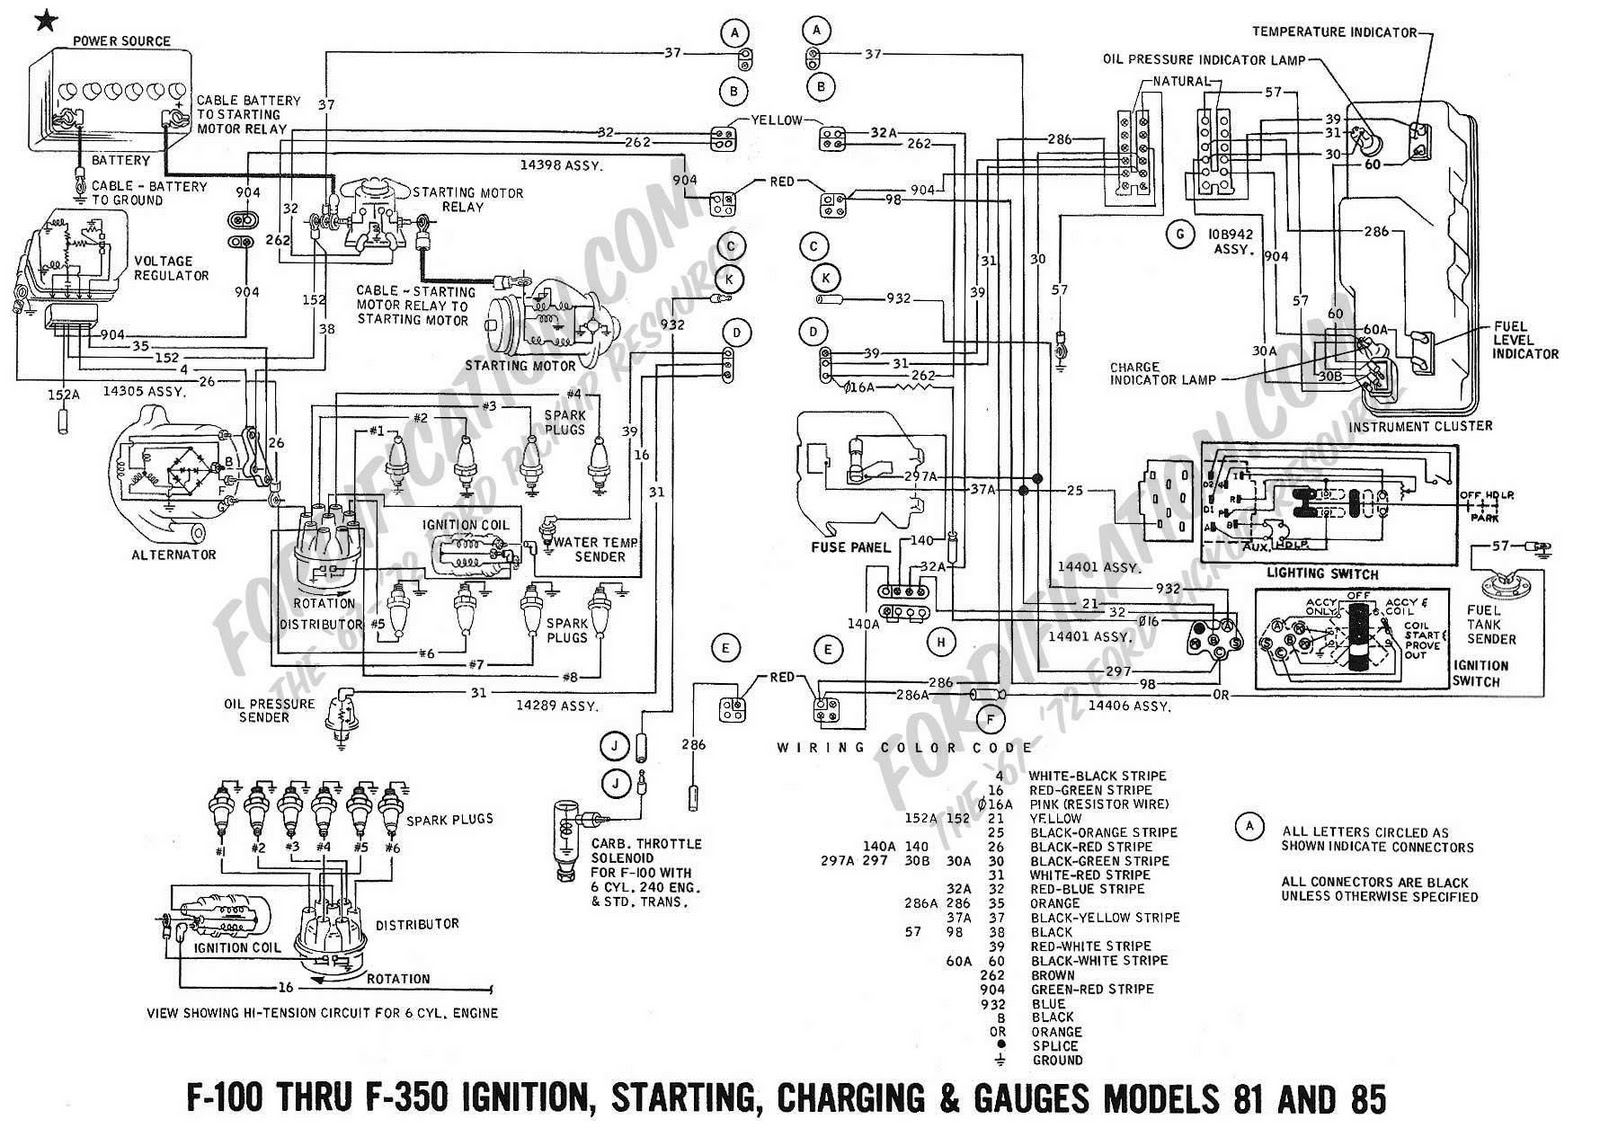 1968 F100 Wiring Diagram Wiring Schematic Diagram Www Codeshaker Co